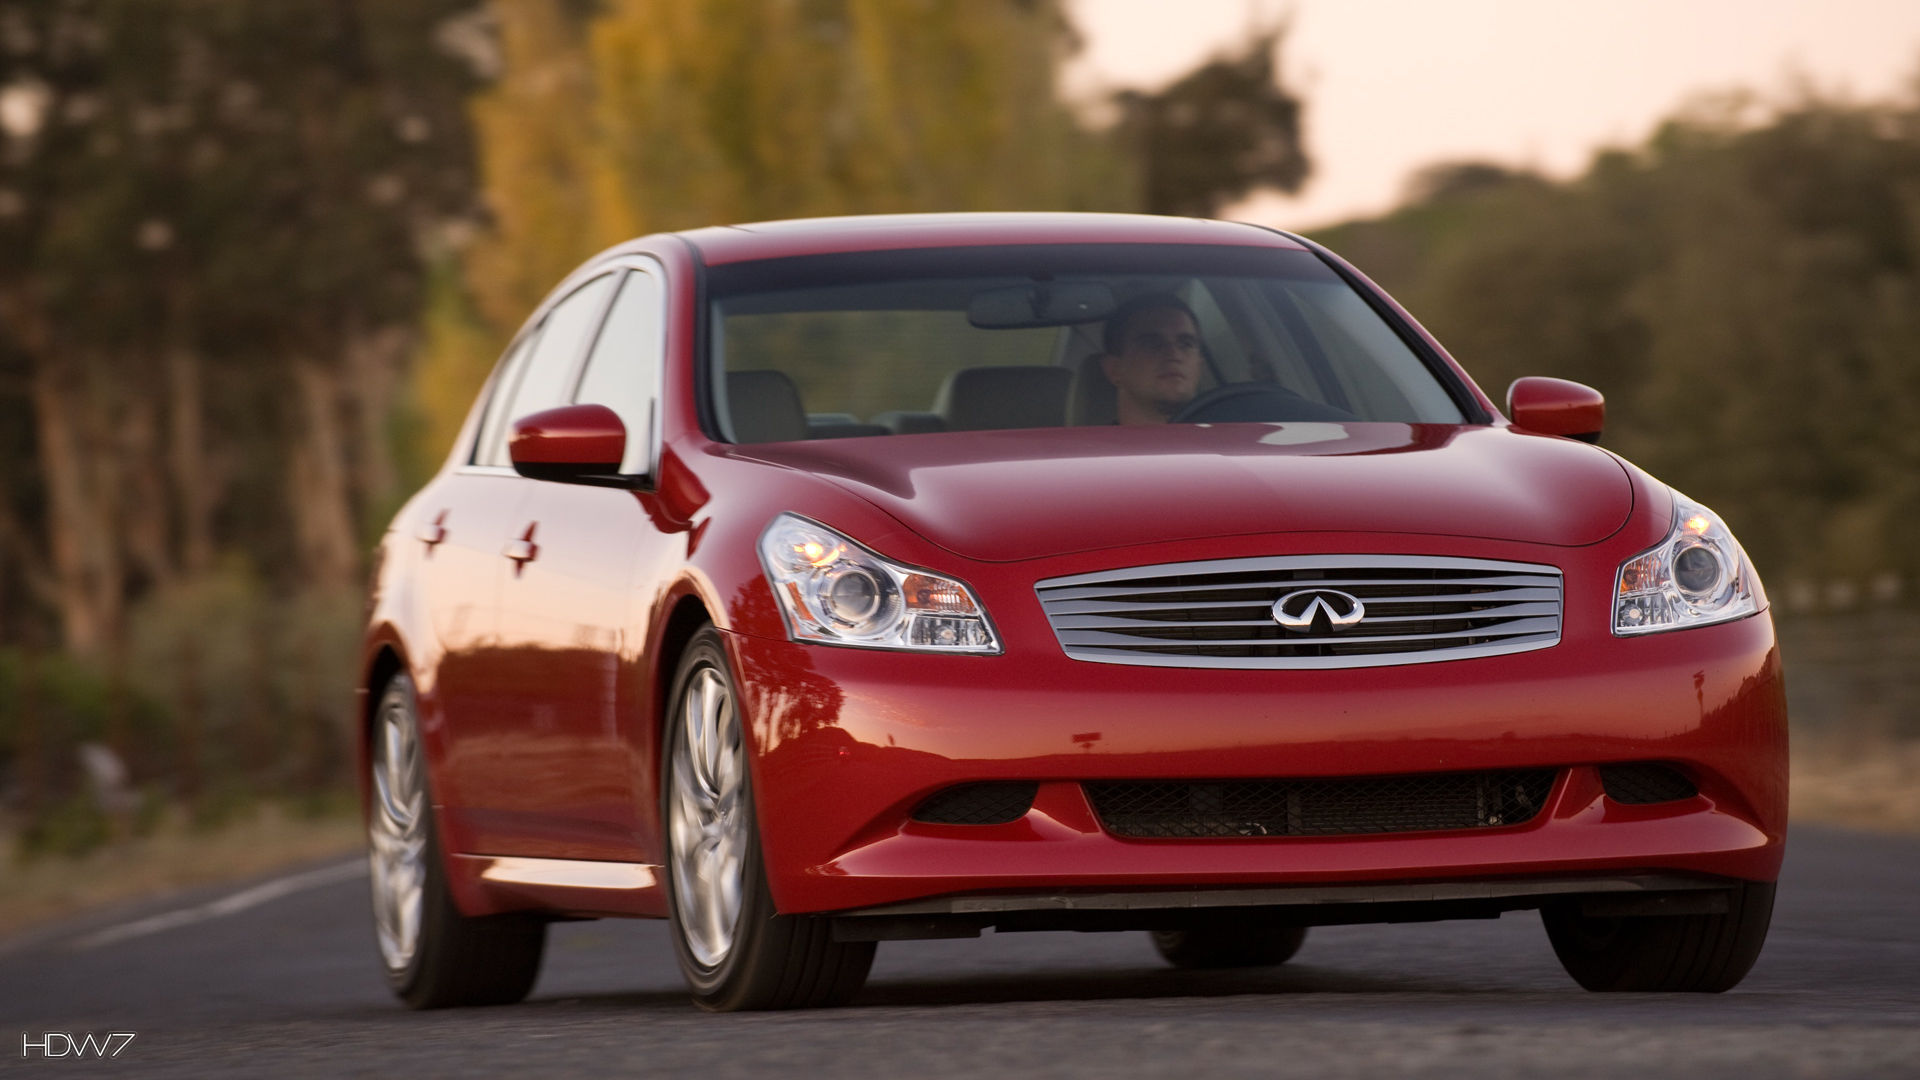 infiniti g37 s sedan 2009 car hd wallpaper